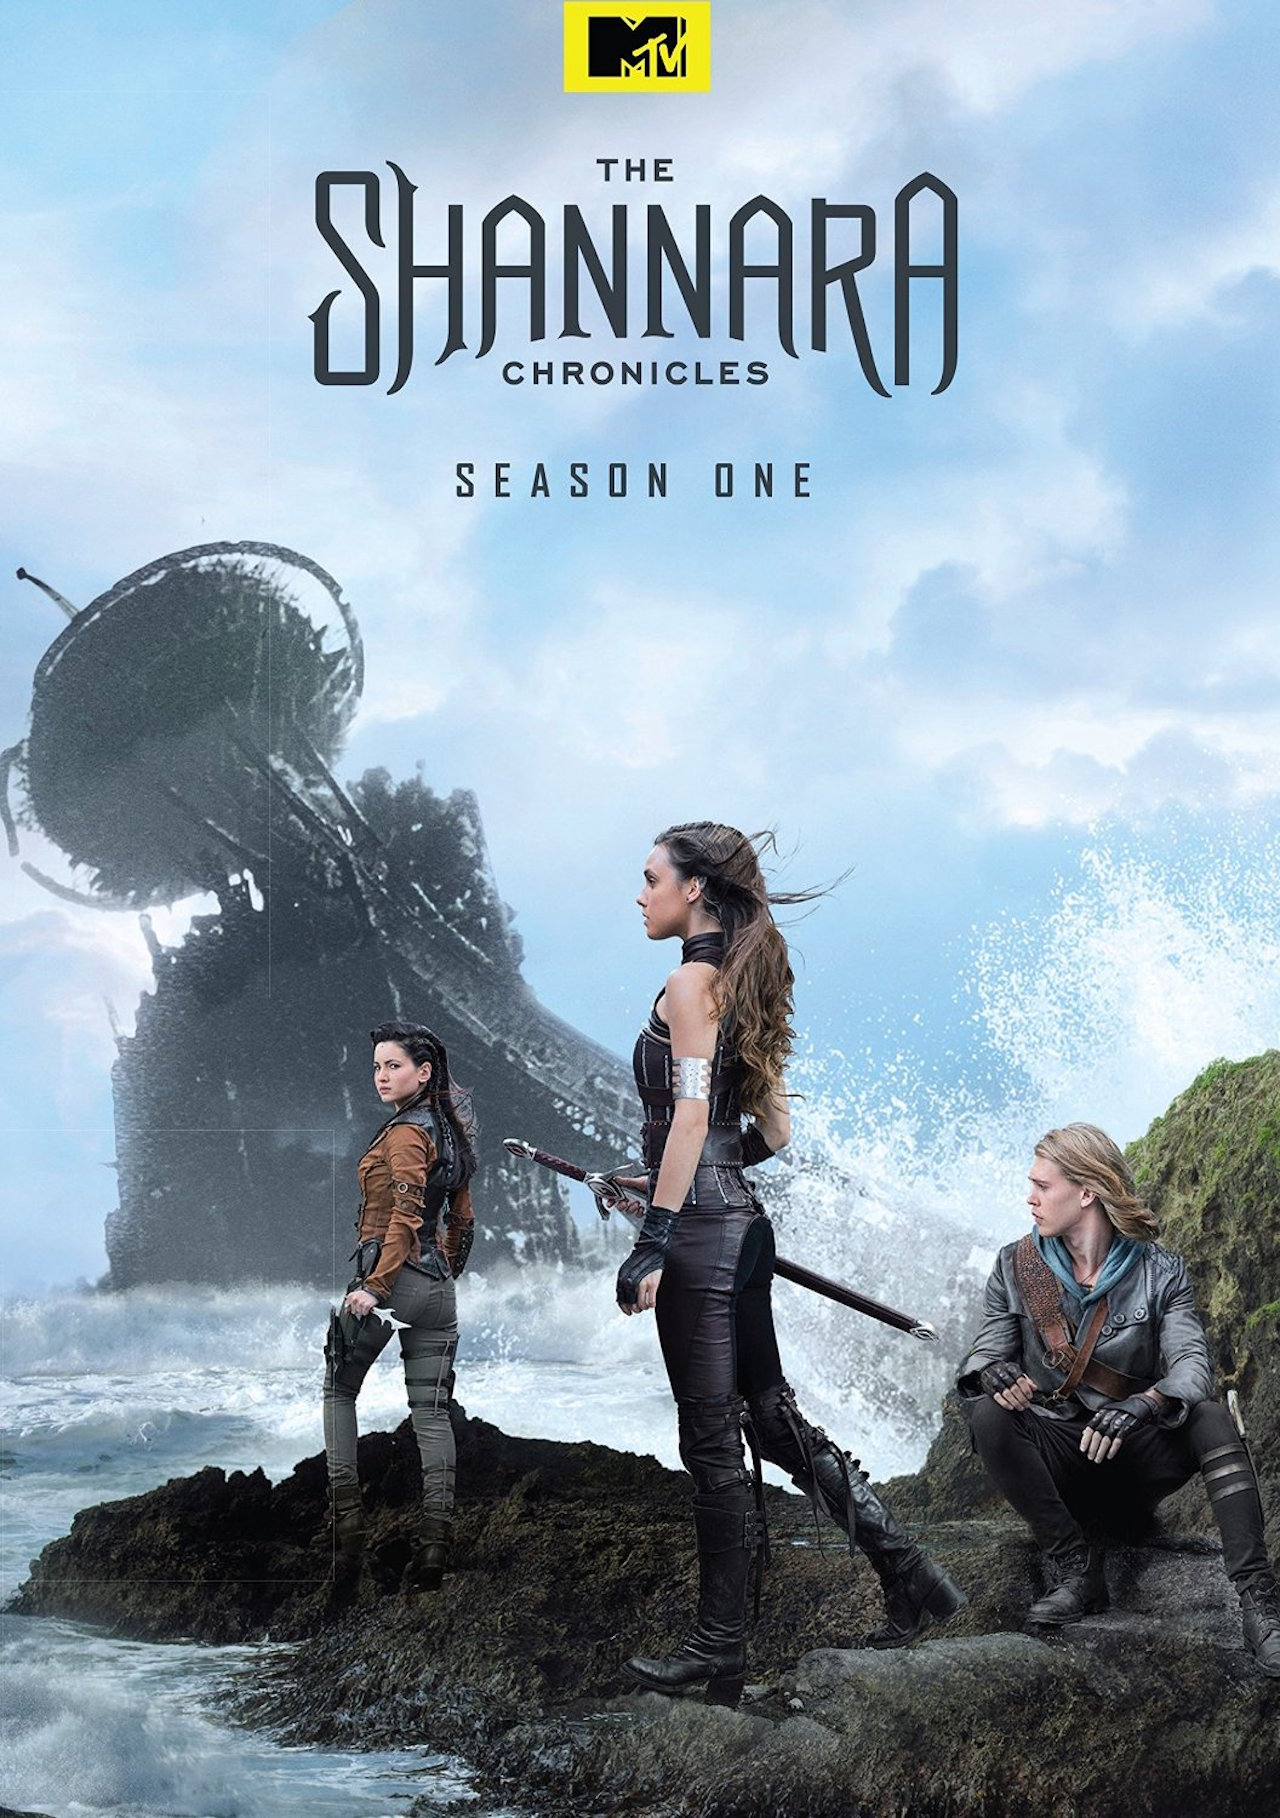 The Shannara Chronicles - Season One